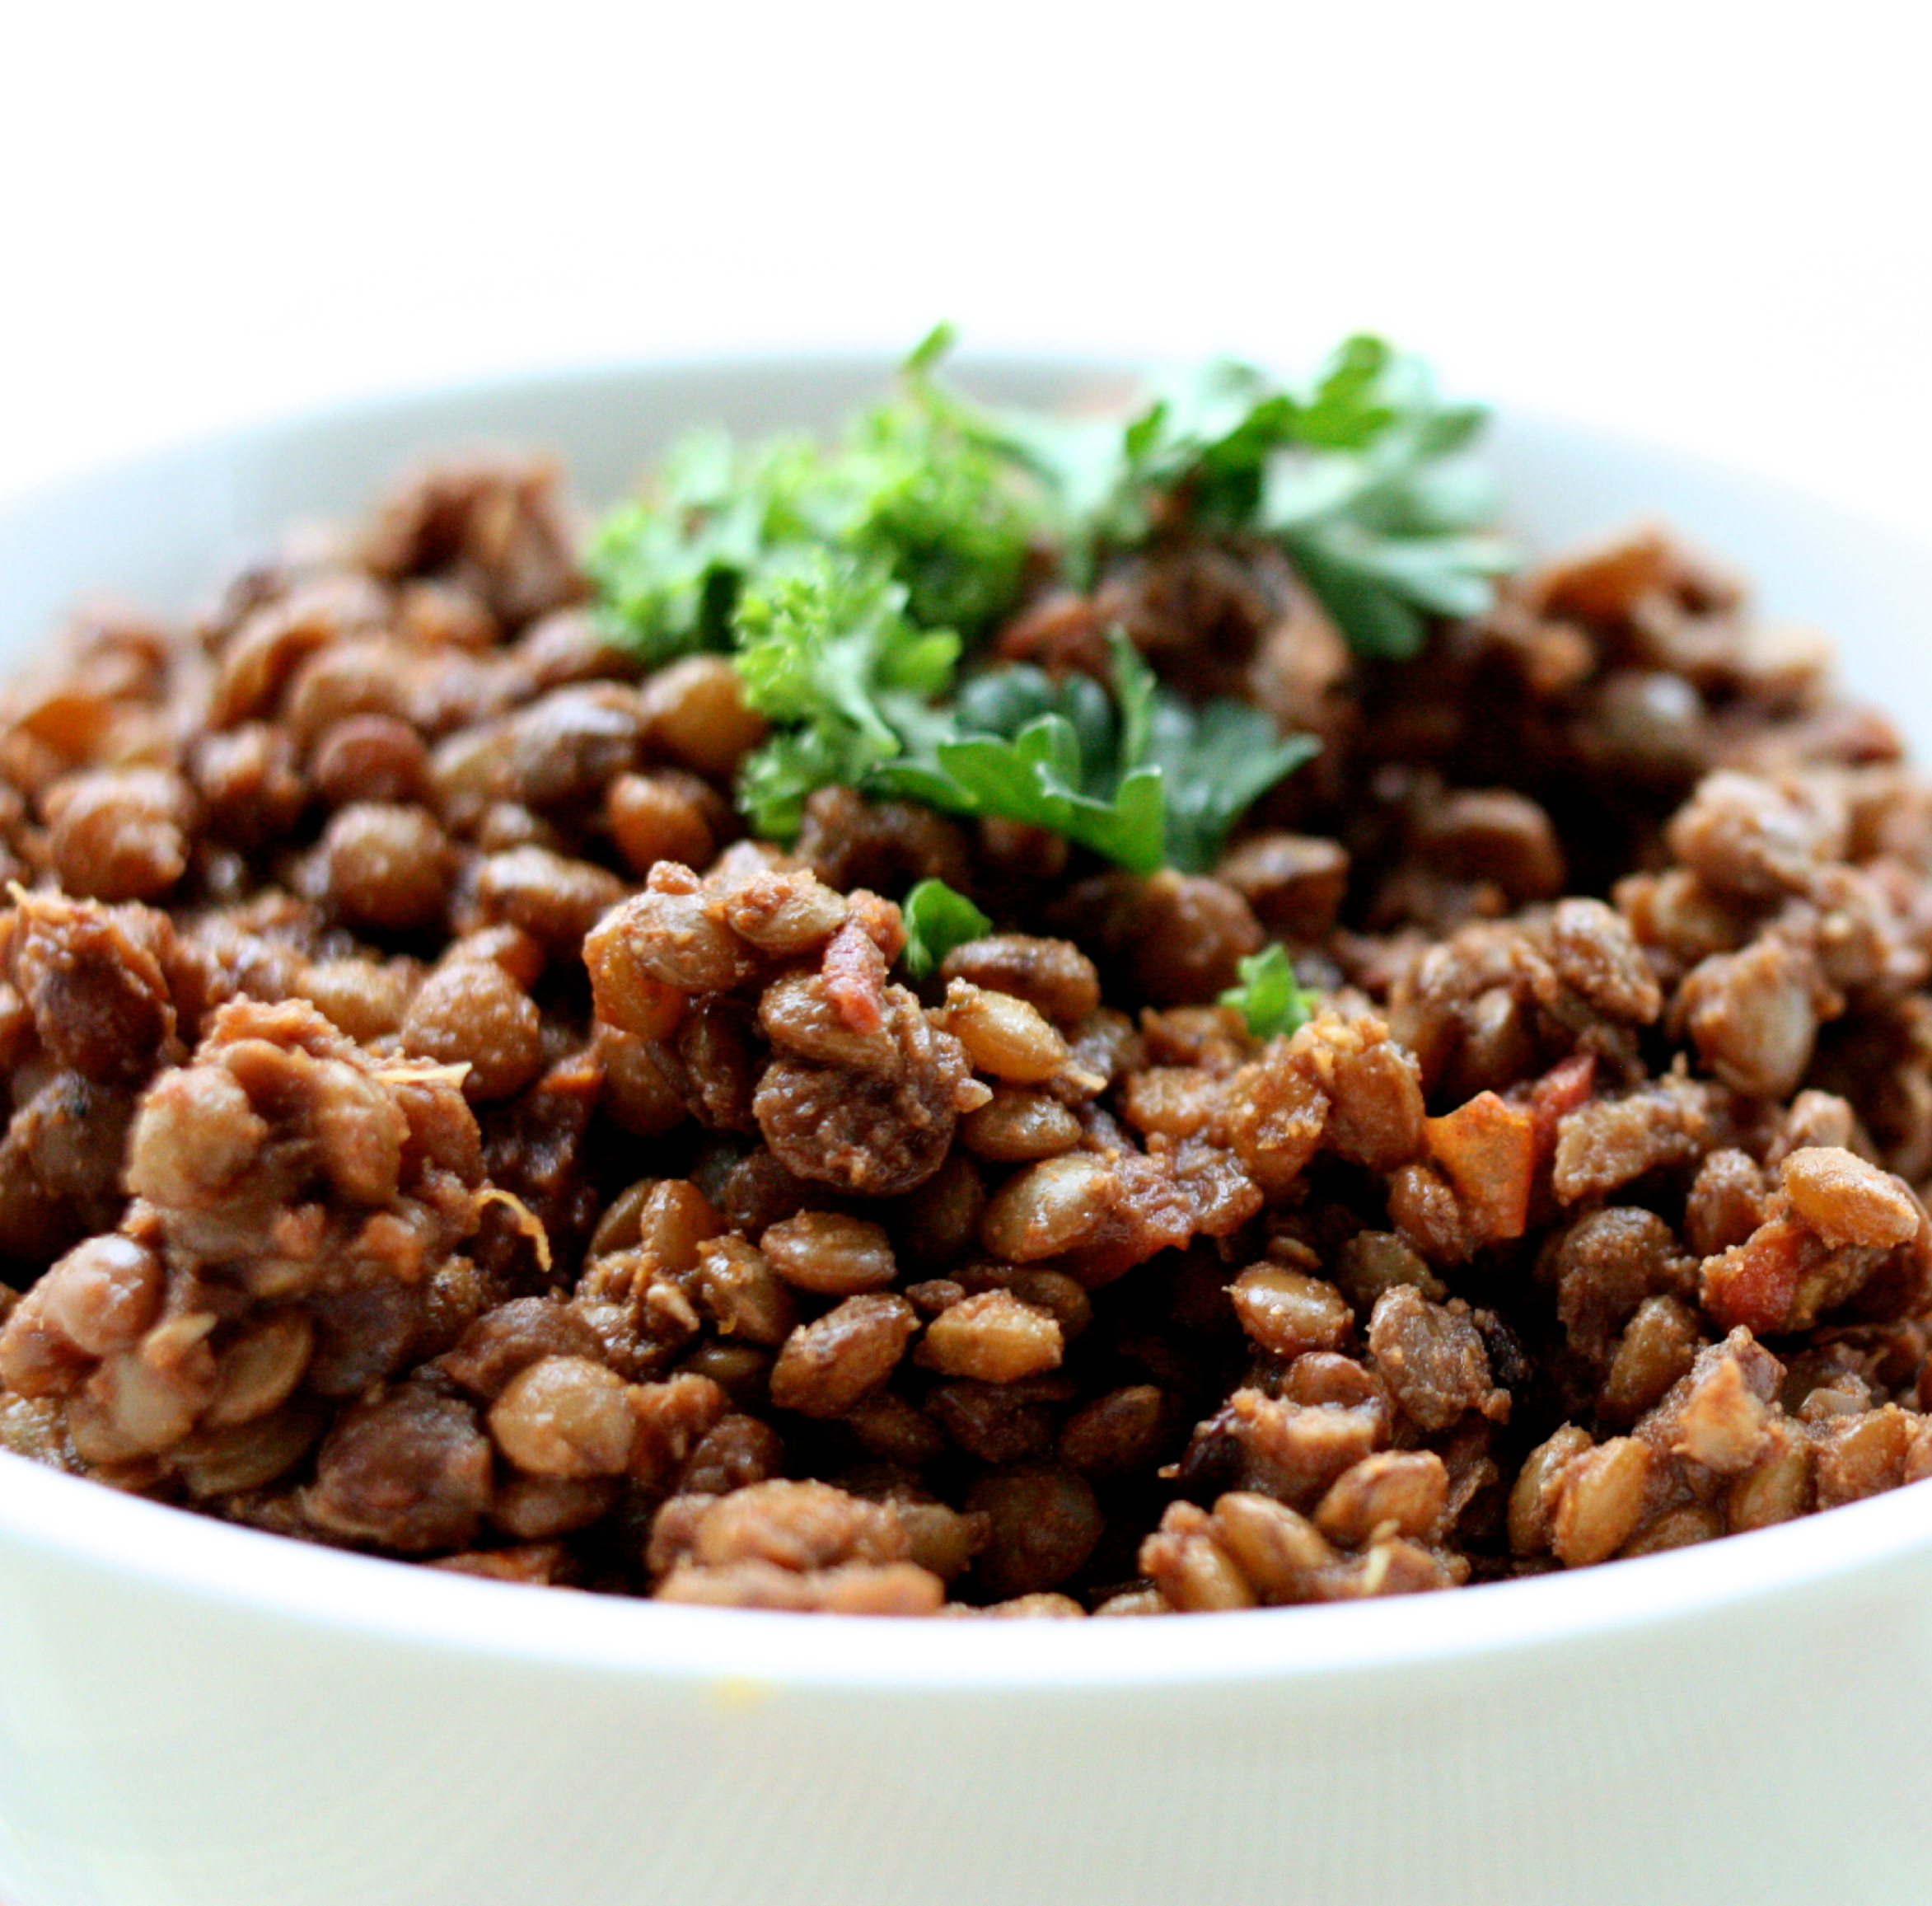 Savory spiced tamarind lentils | The Full Helping